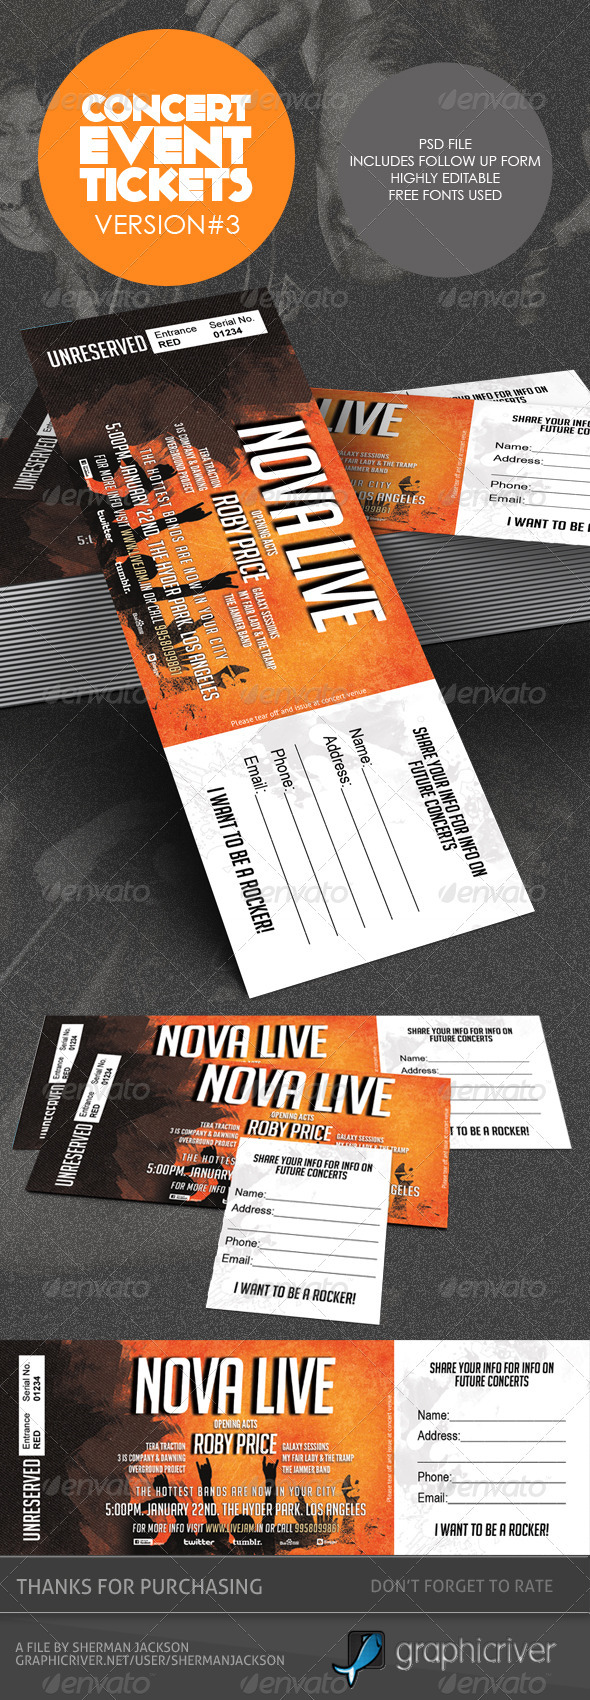 GraphicRiver Concert & Event Tickets Passes Version 3 3825654